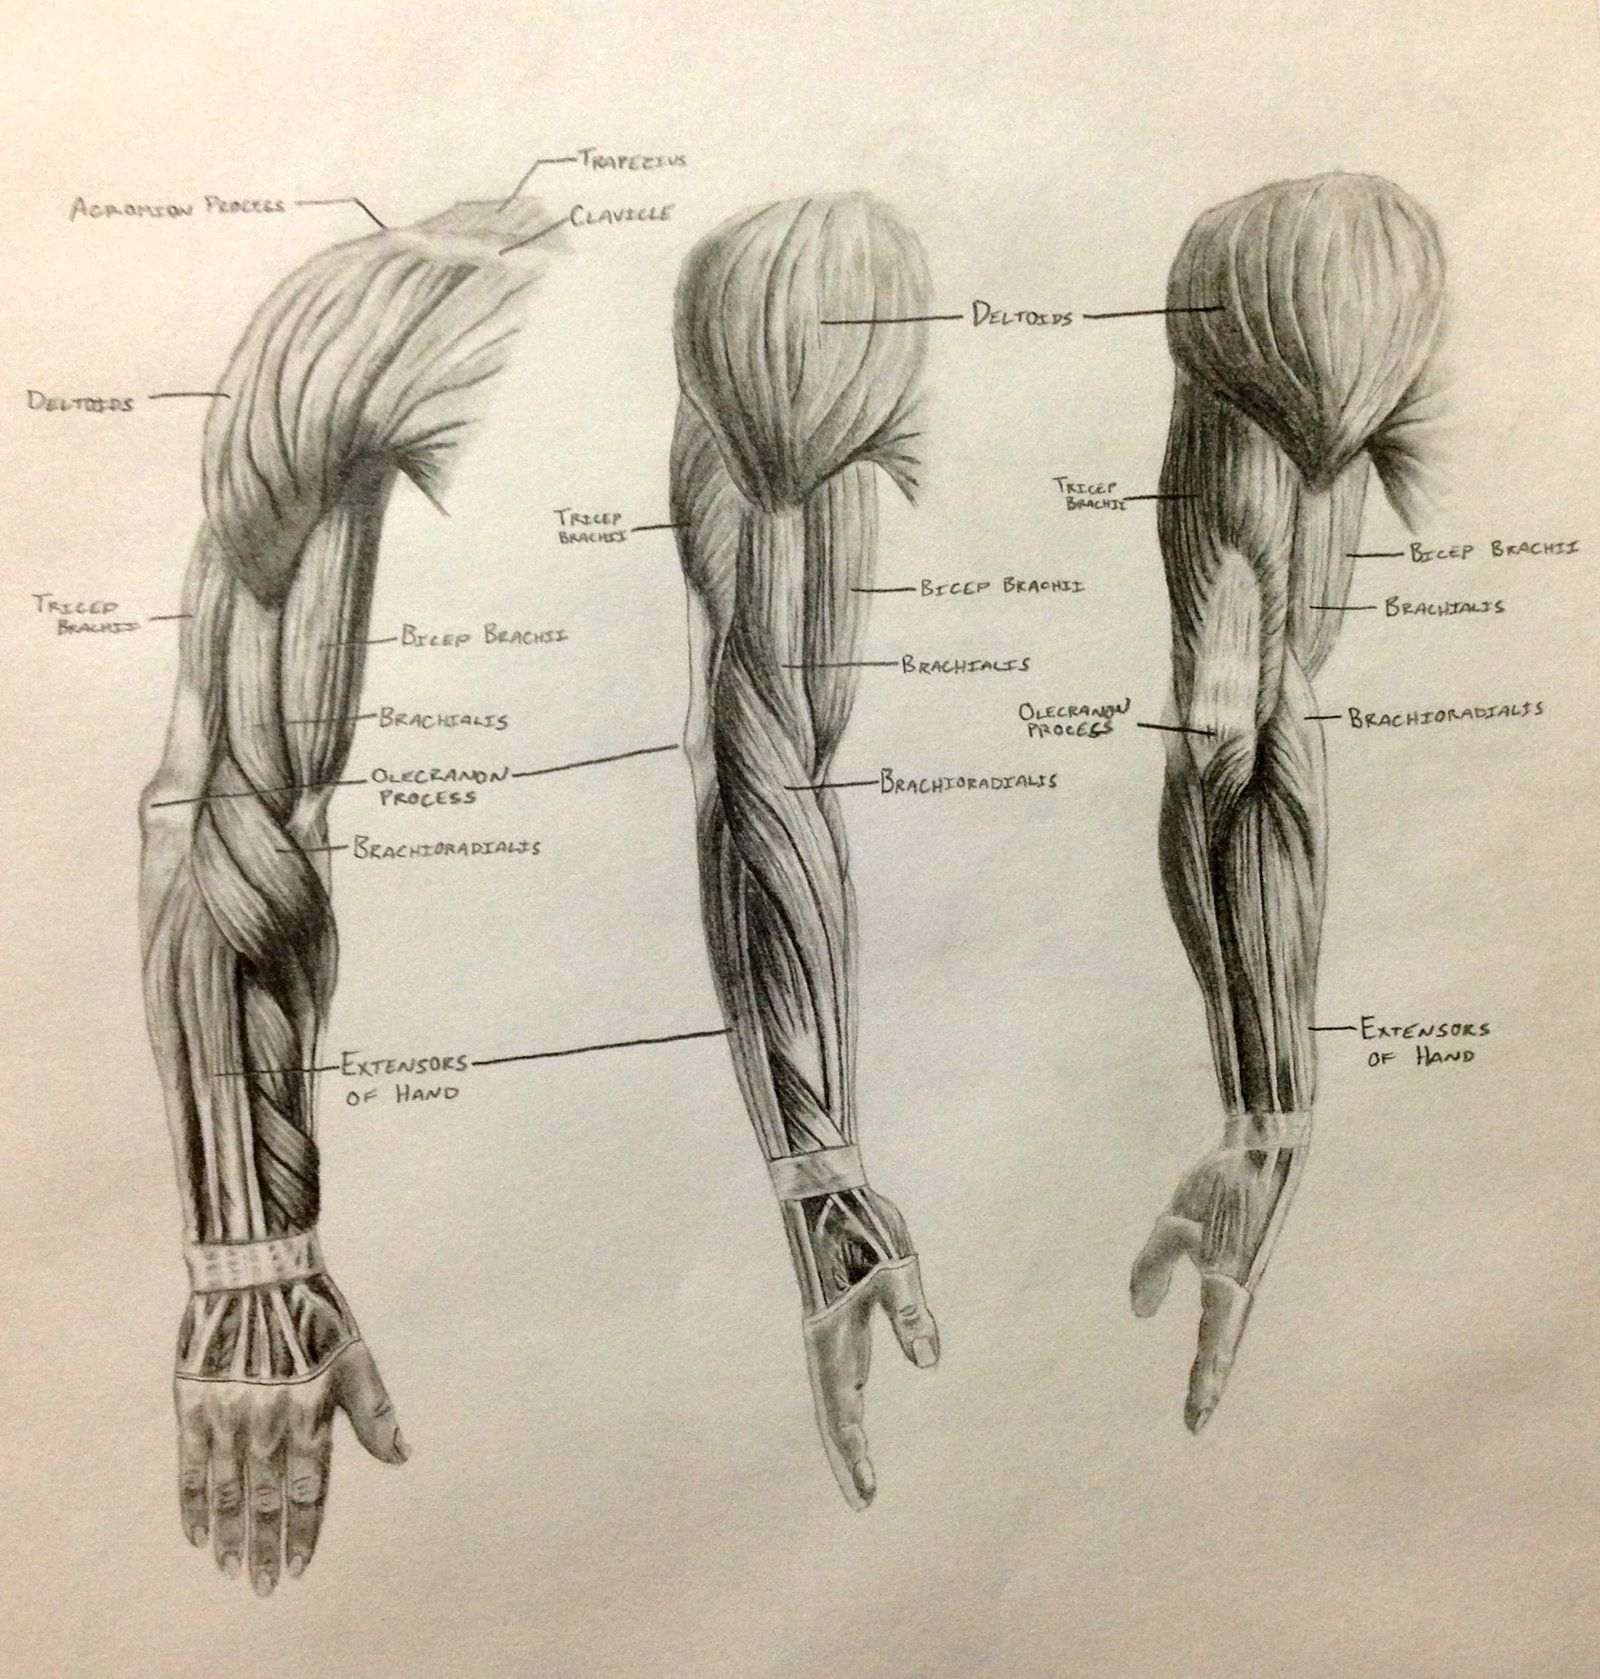 Muscles arm hand - innerbody, The muscles of the arm and hand are ...